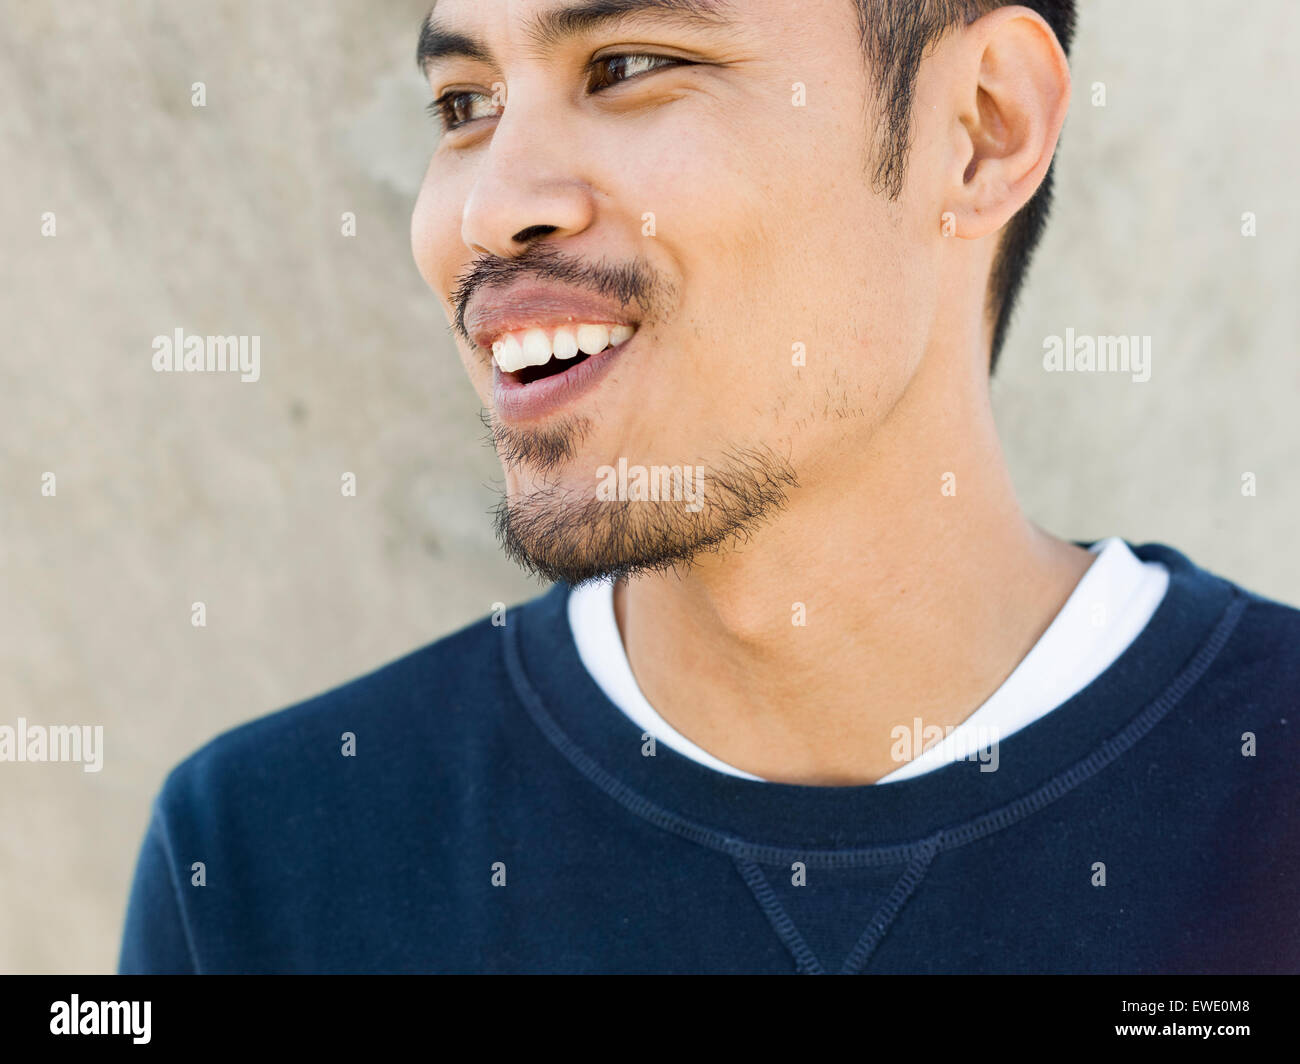 Portrait of a smiling young man Asian mixed race barbe de looking sideways Photo Stock